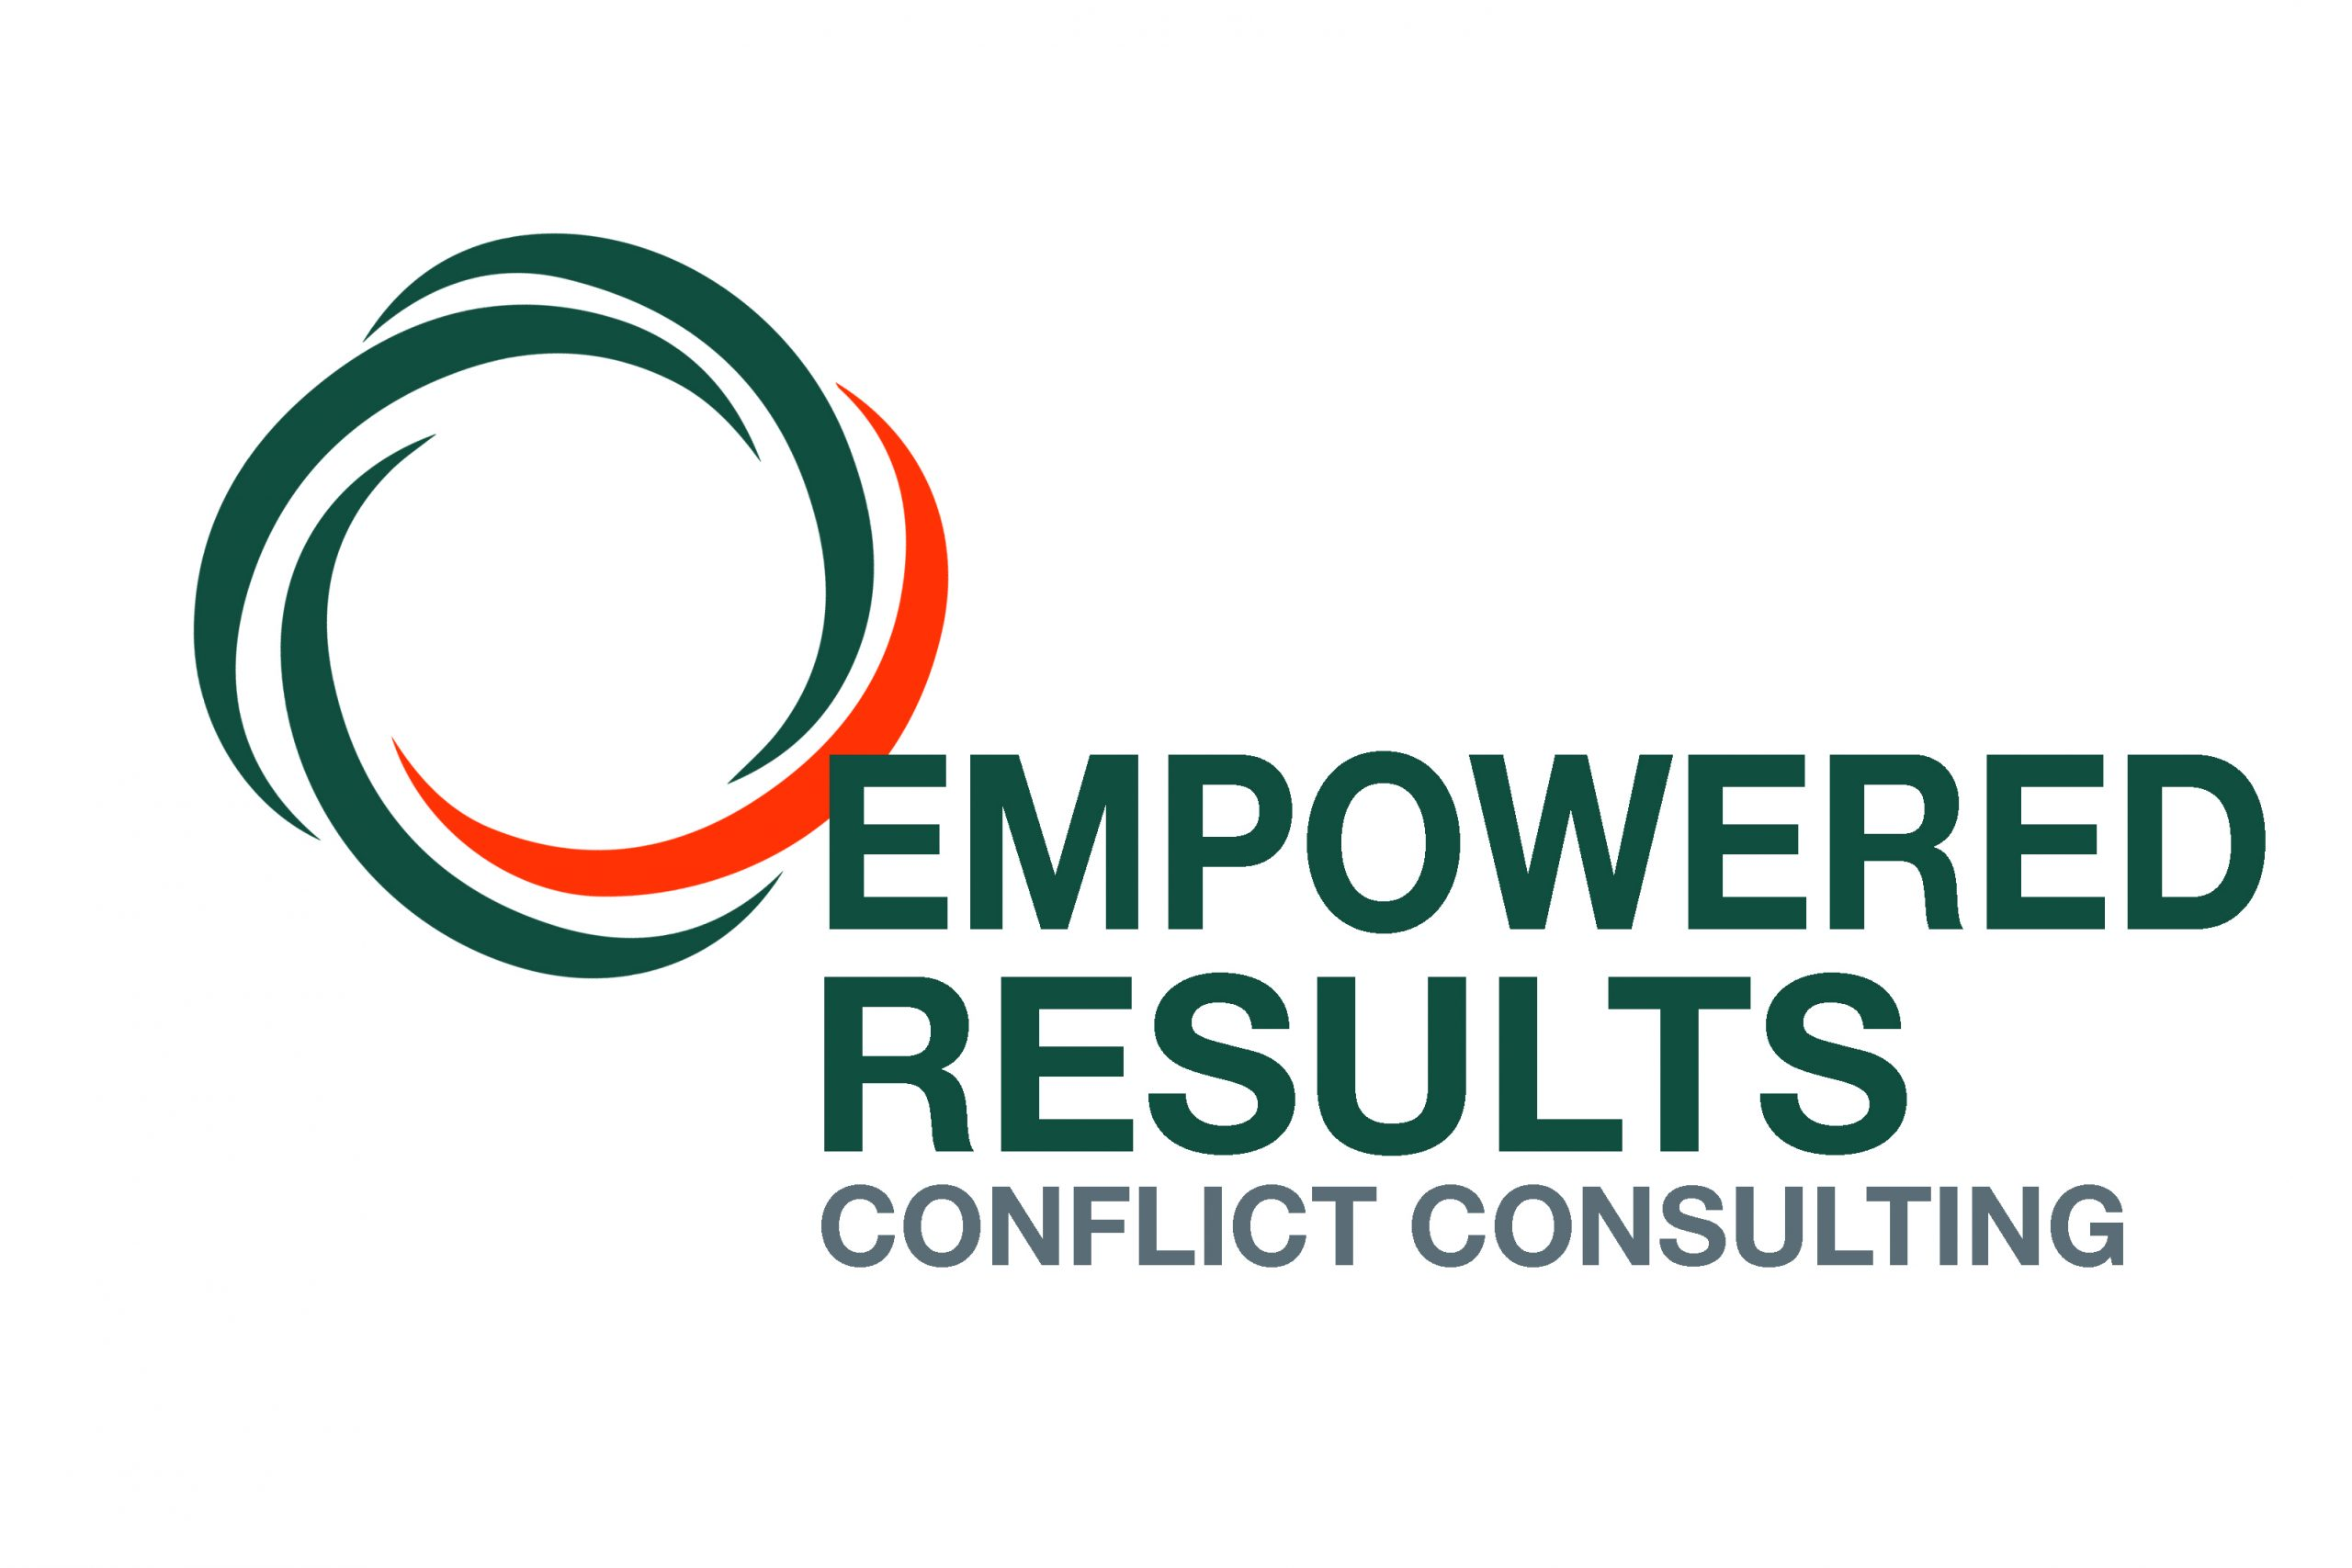 Empowered Results Conflict Consulting Services